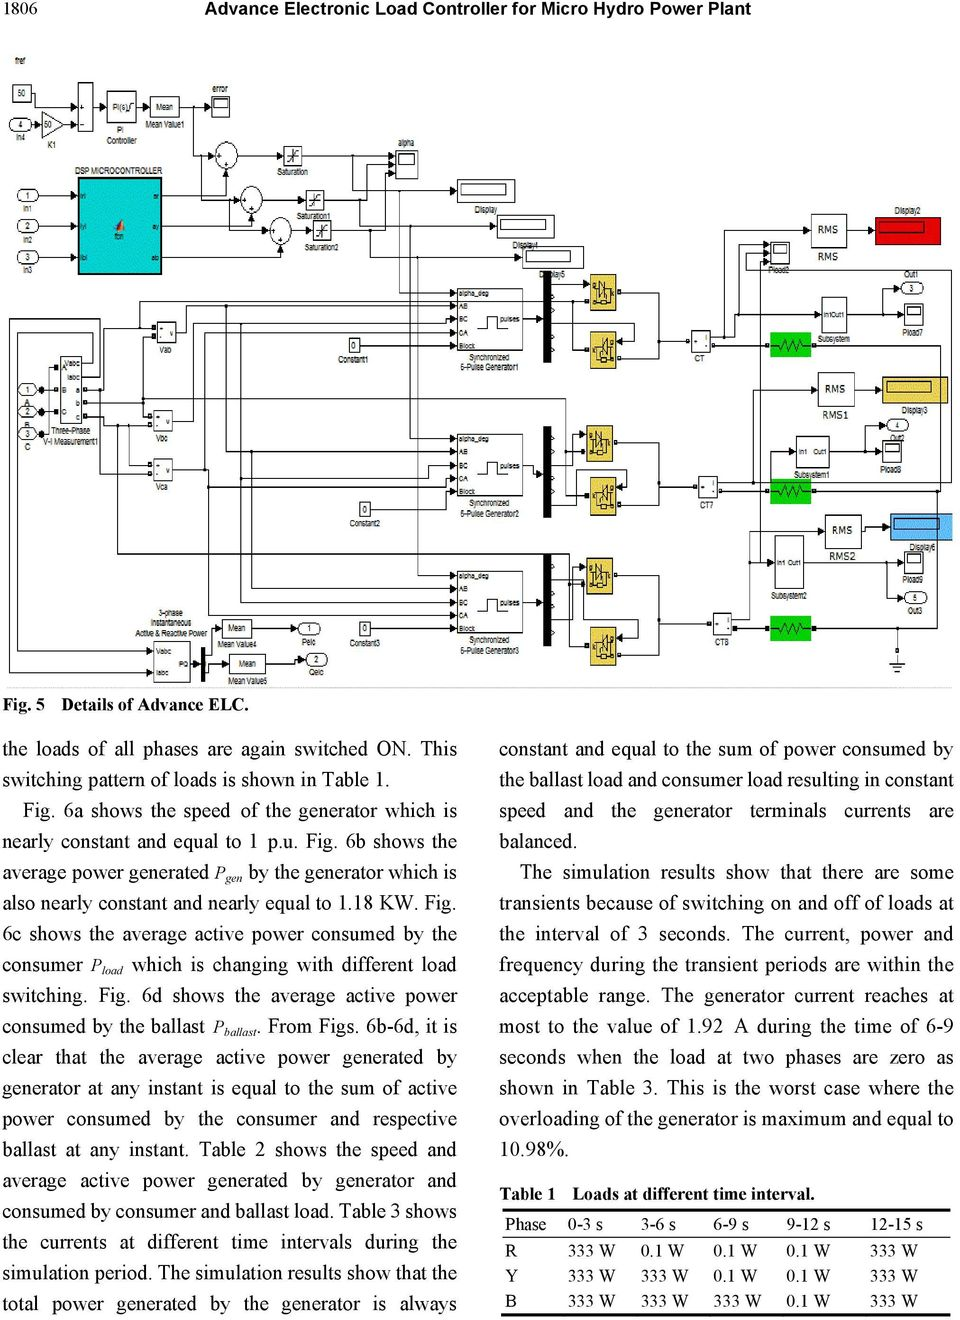 Advance Electronic Load Controller For Micro Hydro Power Plant Pdf Generator Diagram 6b Showss The Average Generated P Gen By Which Is Also Nearly Constant